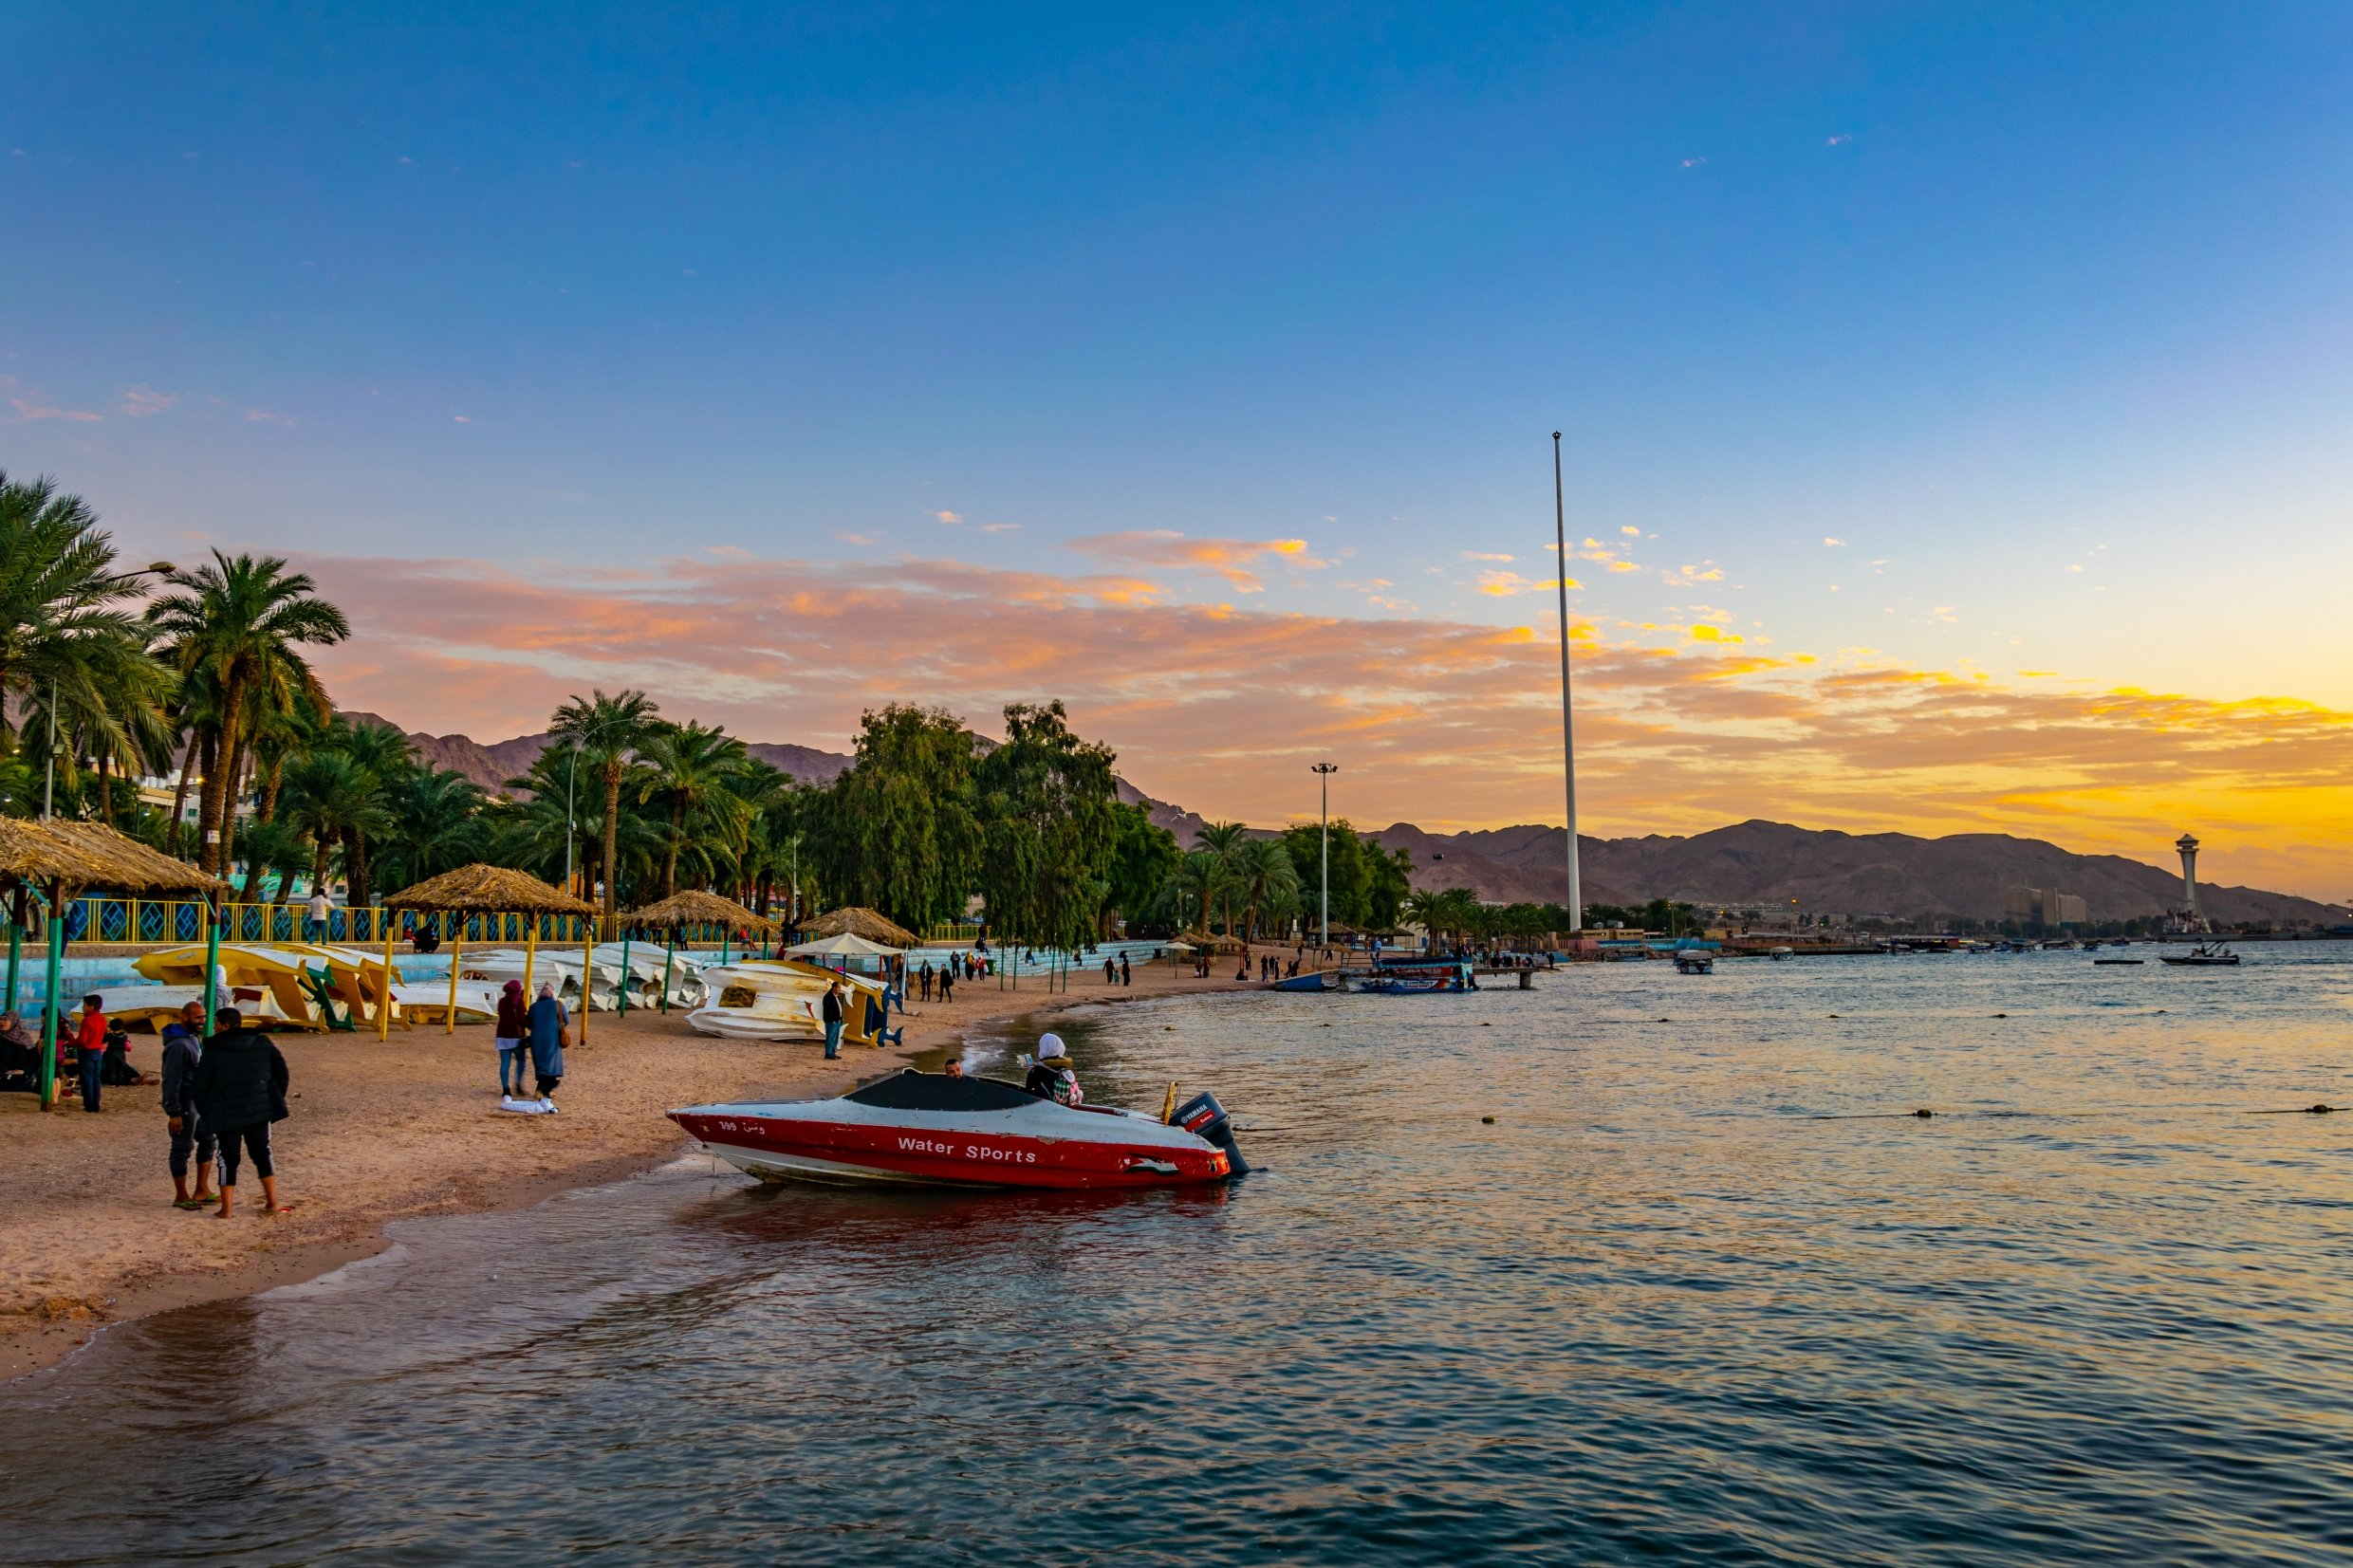 Aqaba Travel